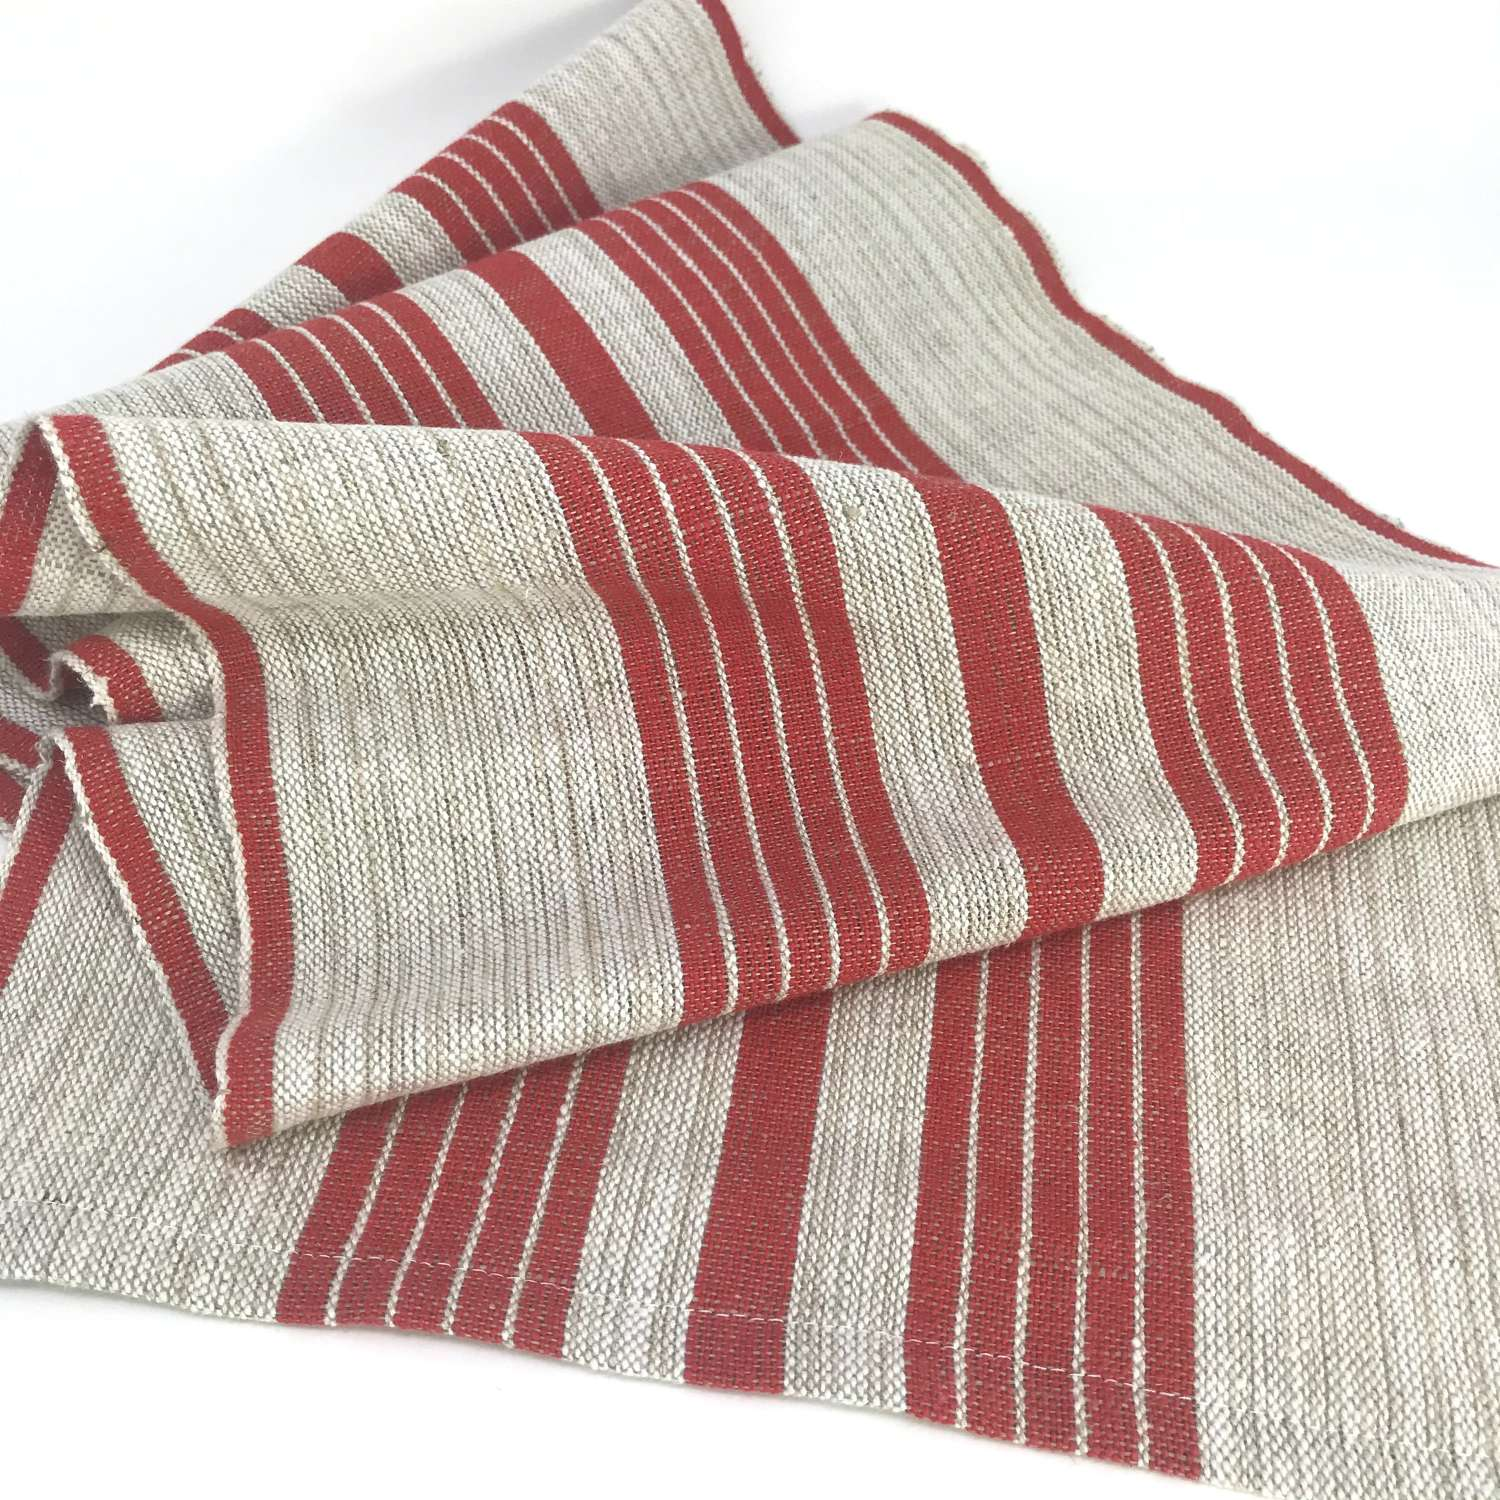 Swedish handwoven linen table runner in natural and red, c1970s unused